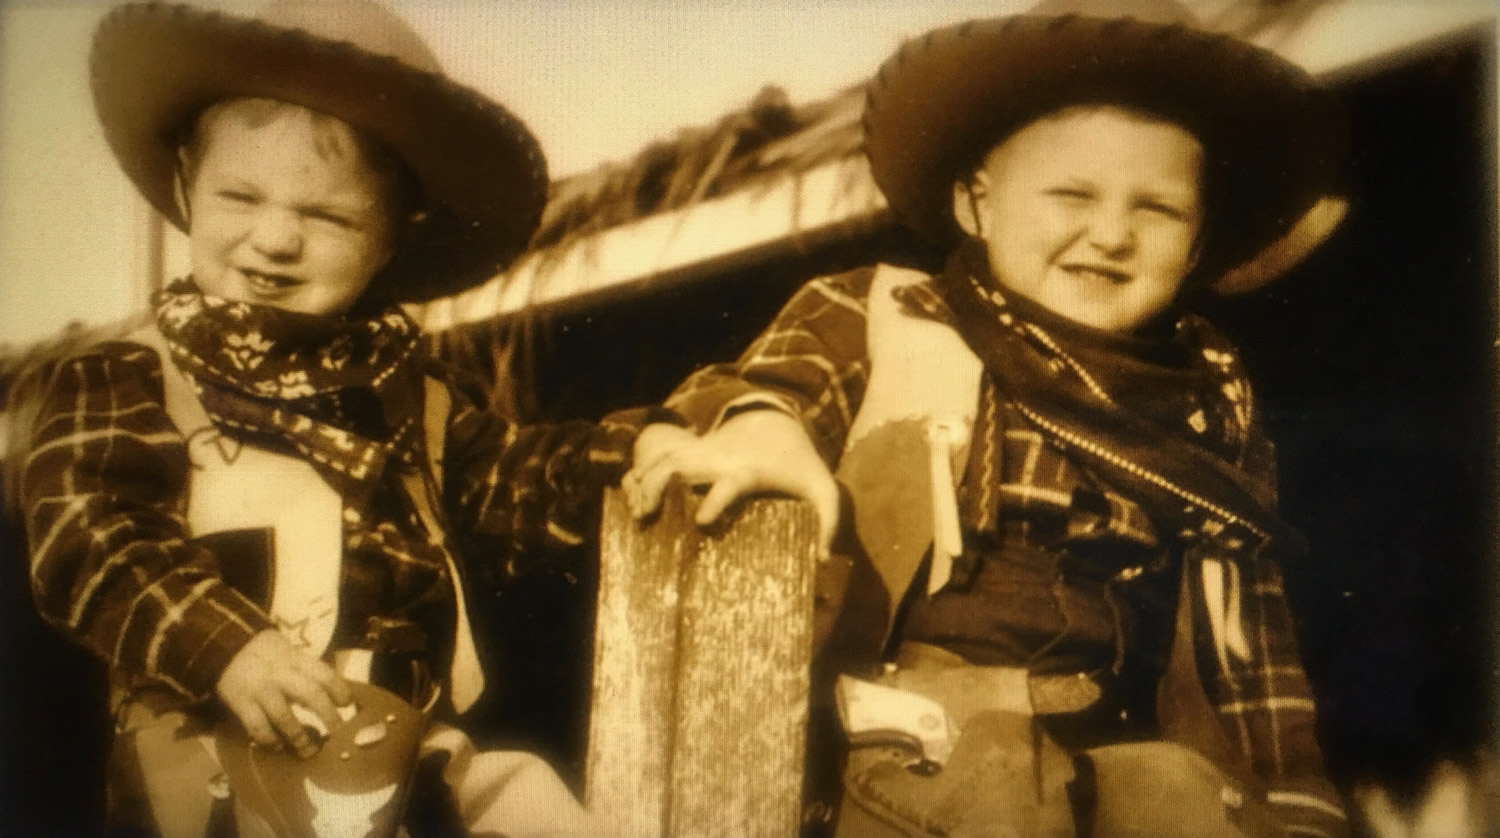 Richard and James Griffin, Los Angeles 1946